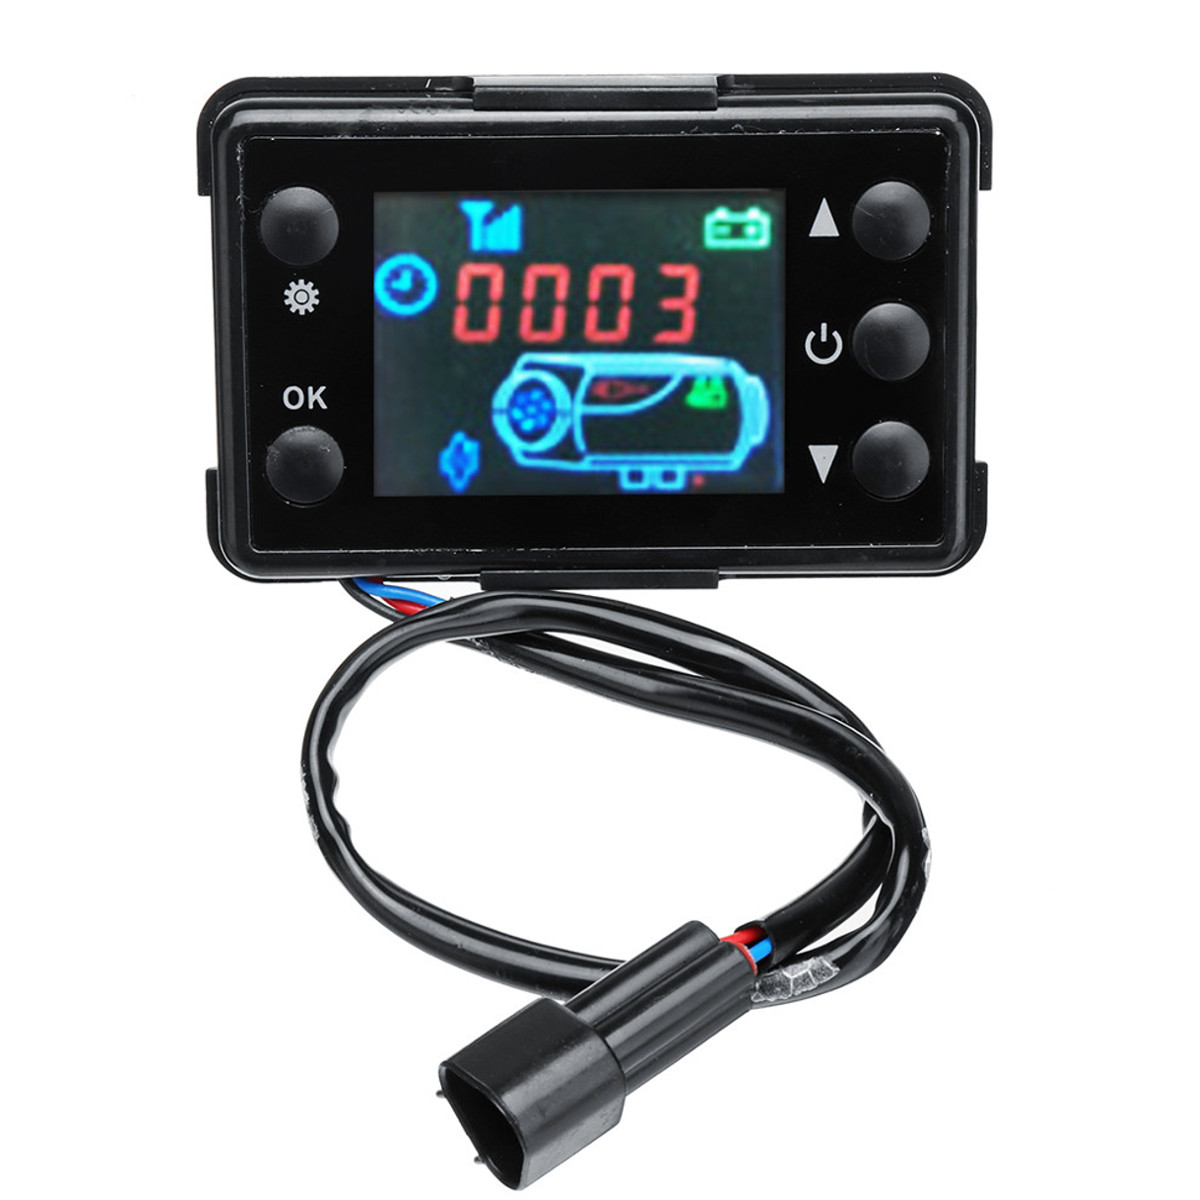 Automobiles & Motorcycles 12v/24v 3/5kw Lcd Monitor Parking Heater Switch Car Heating Device Controller Universal For Car Track Air Heater Skilful Manufacture Controllers